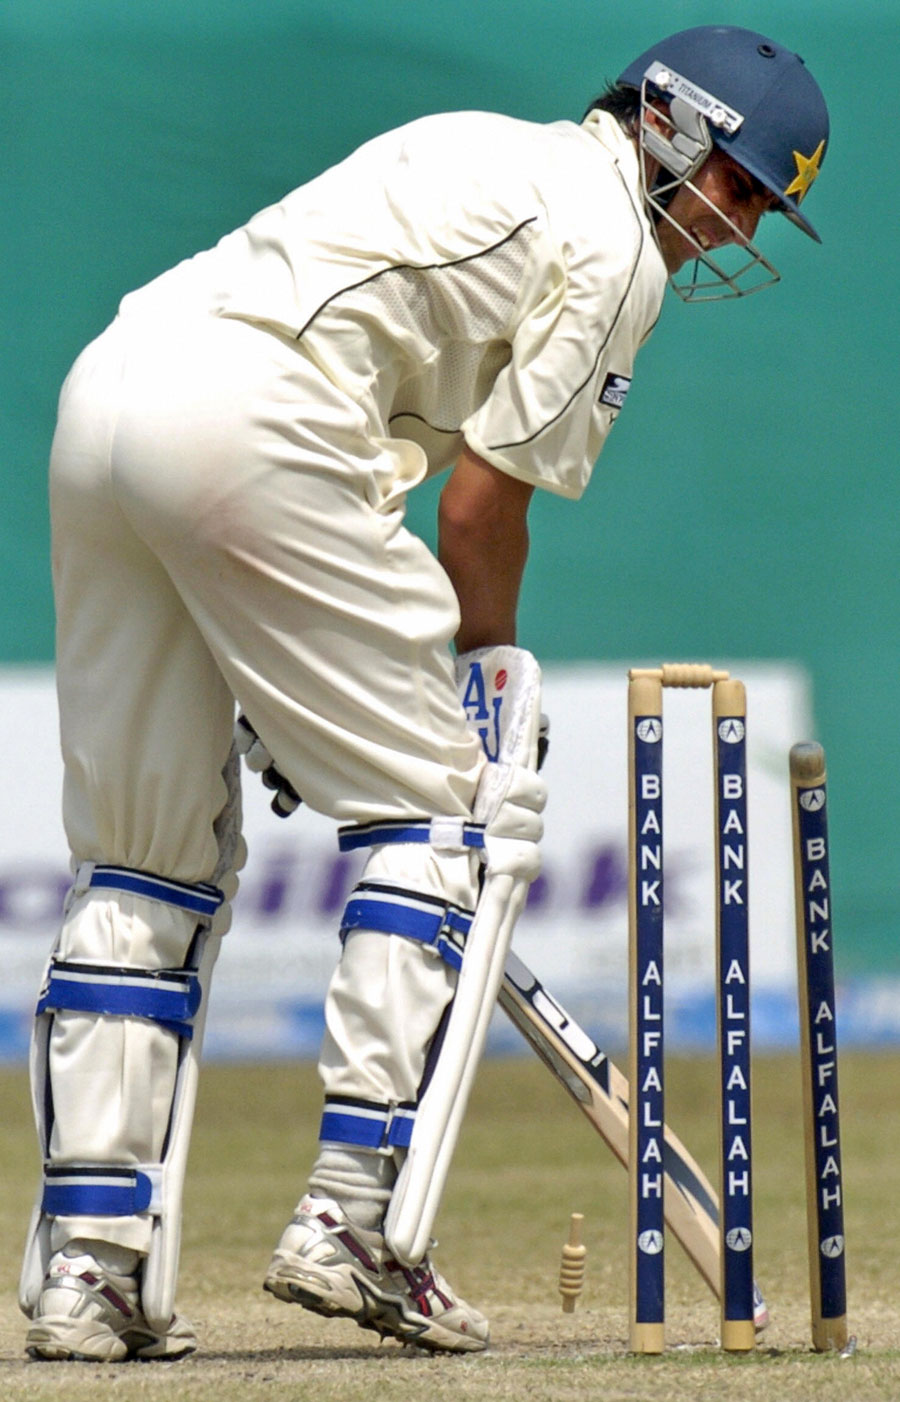 Younis Khan misses the line and is bowled by Dale Steyn, Pakistan v South Africa, 1st Test, Karachi, 5th day, October 5, 2007